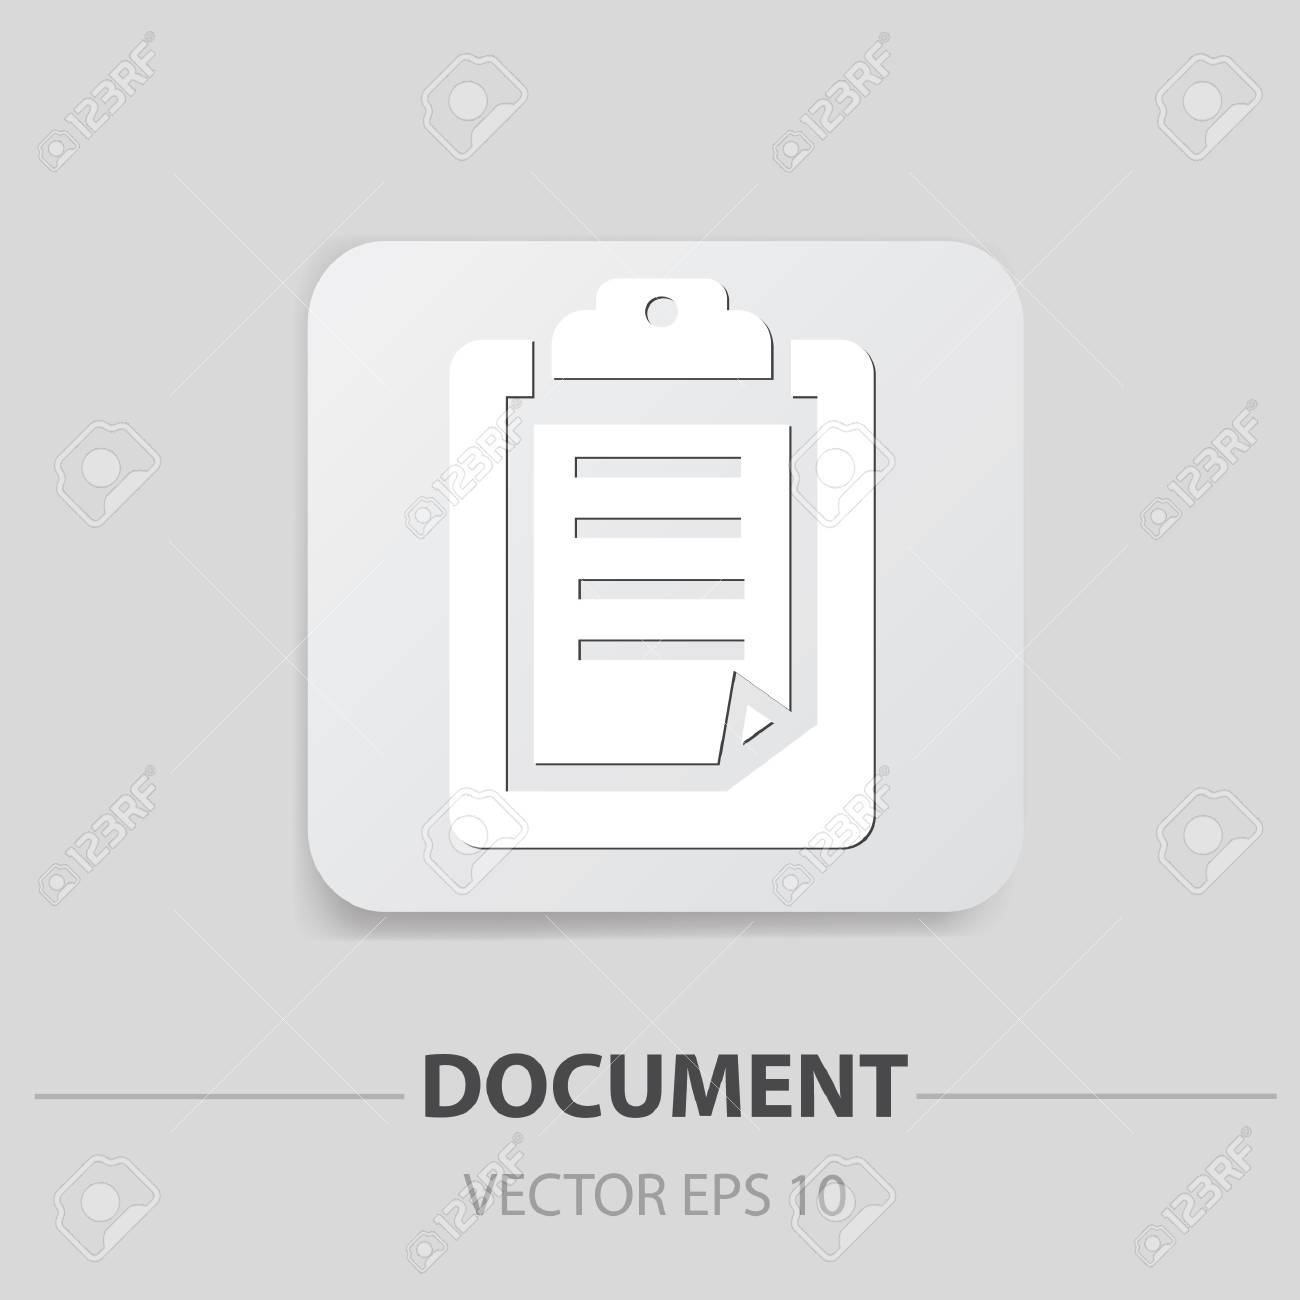 Document sign Stock Vector - 19973111